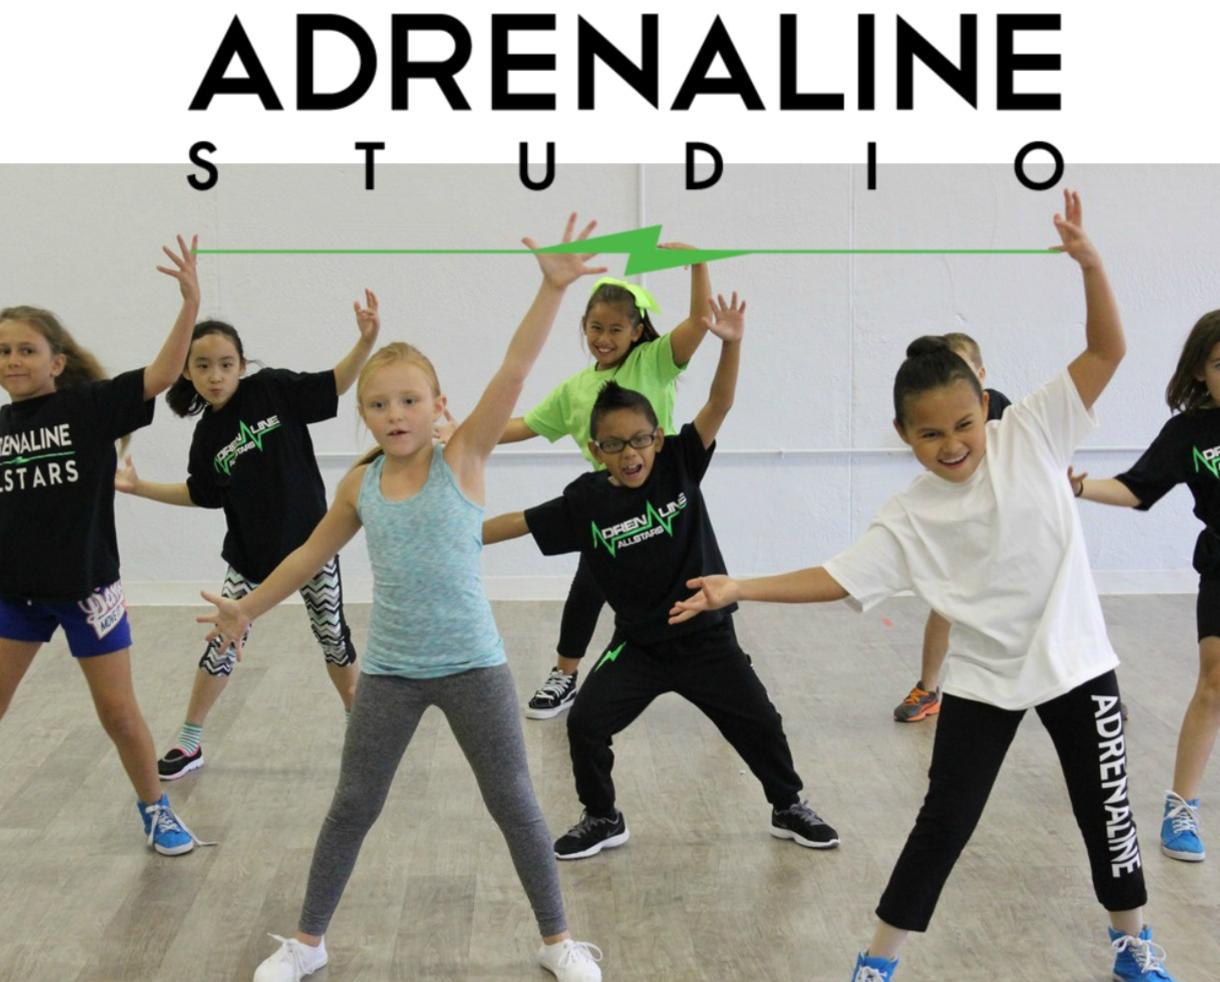 One Week of Half-Day Adrenaline Studio Dance Camp